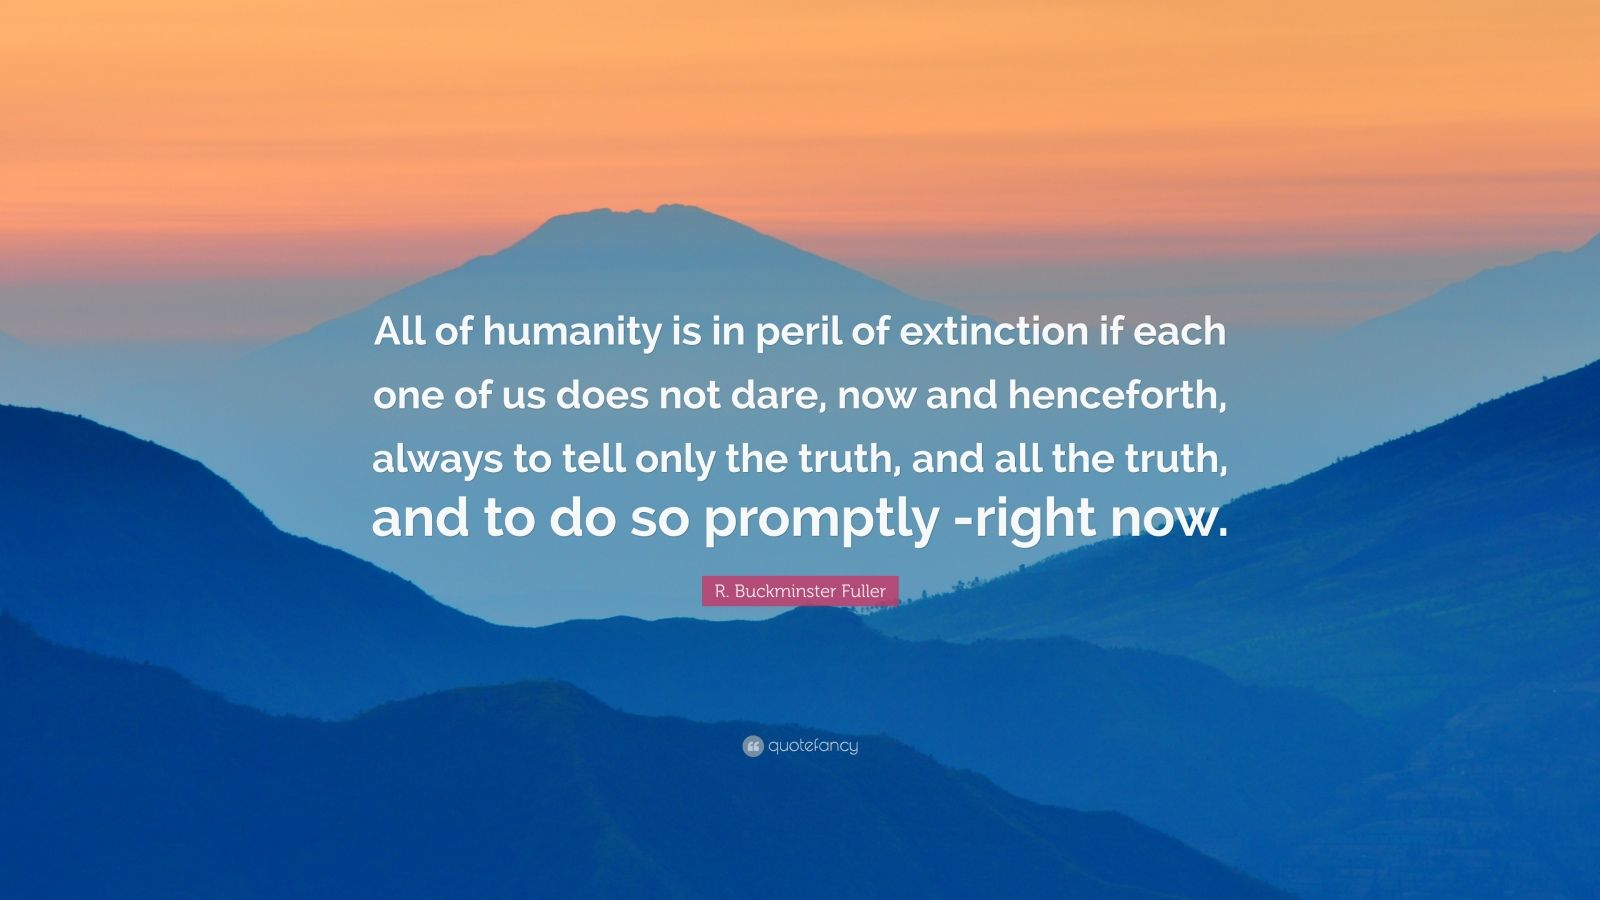 """R. Buckminster Fuller Quote: """"All of humanity is in peril of extinction if each one of us does not dare, now and henceforth, always to tell only the truth, and all the truth, and to do so promptly -right now."""""""